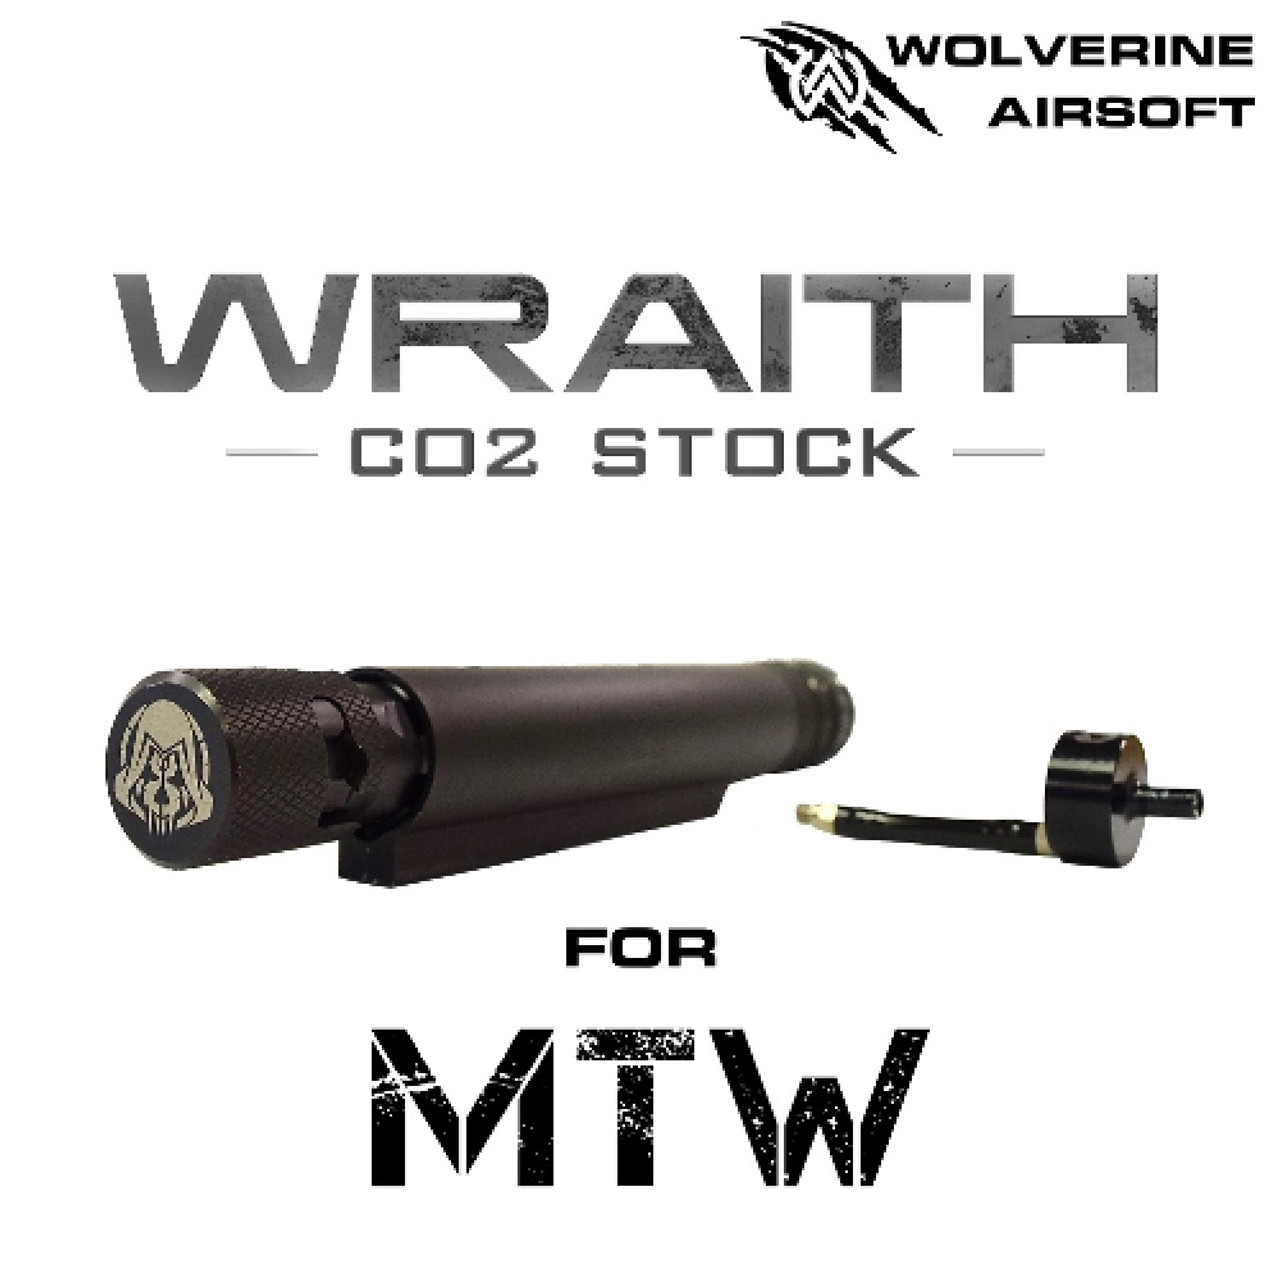 Wolverine Airsoft WRAITH CO2 Stock for MTW   33g CO2